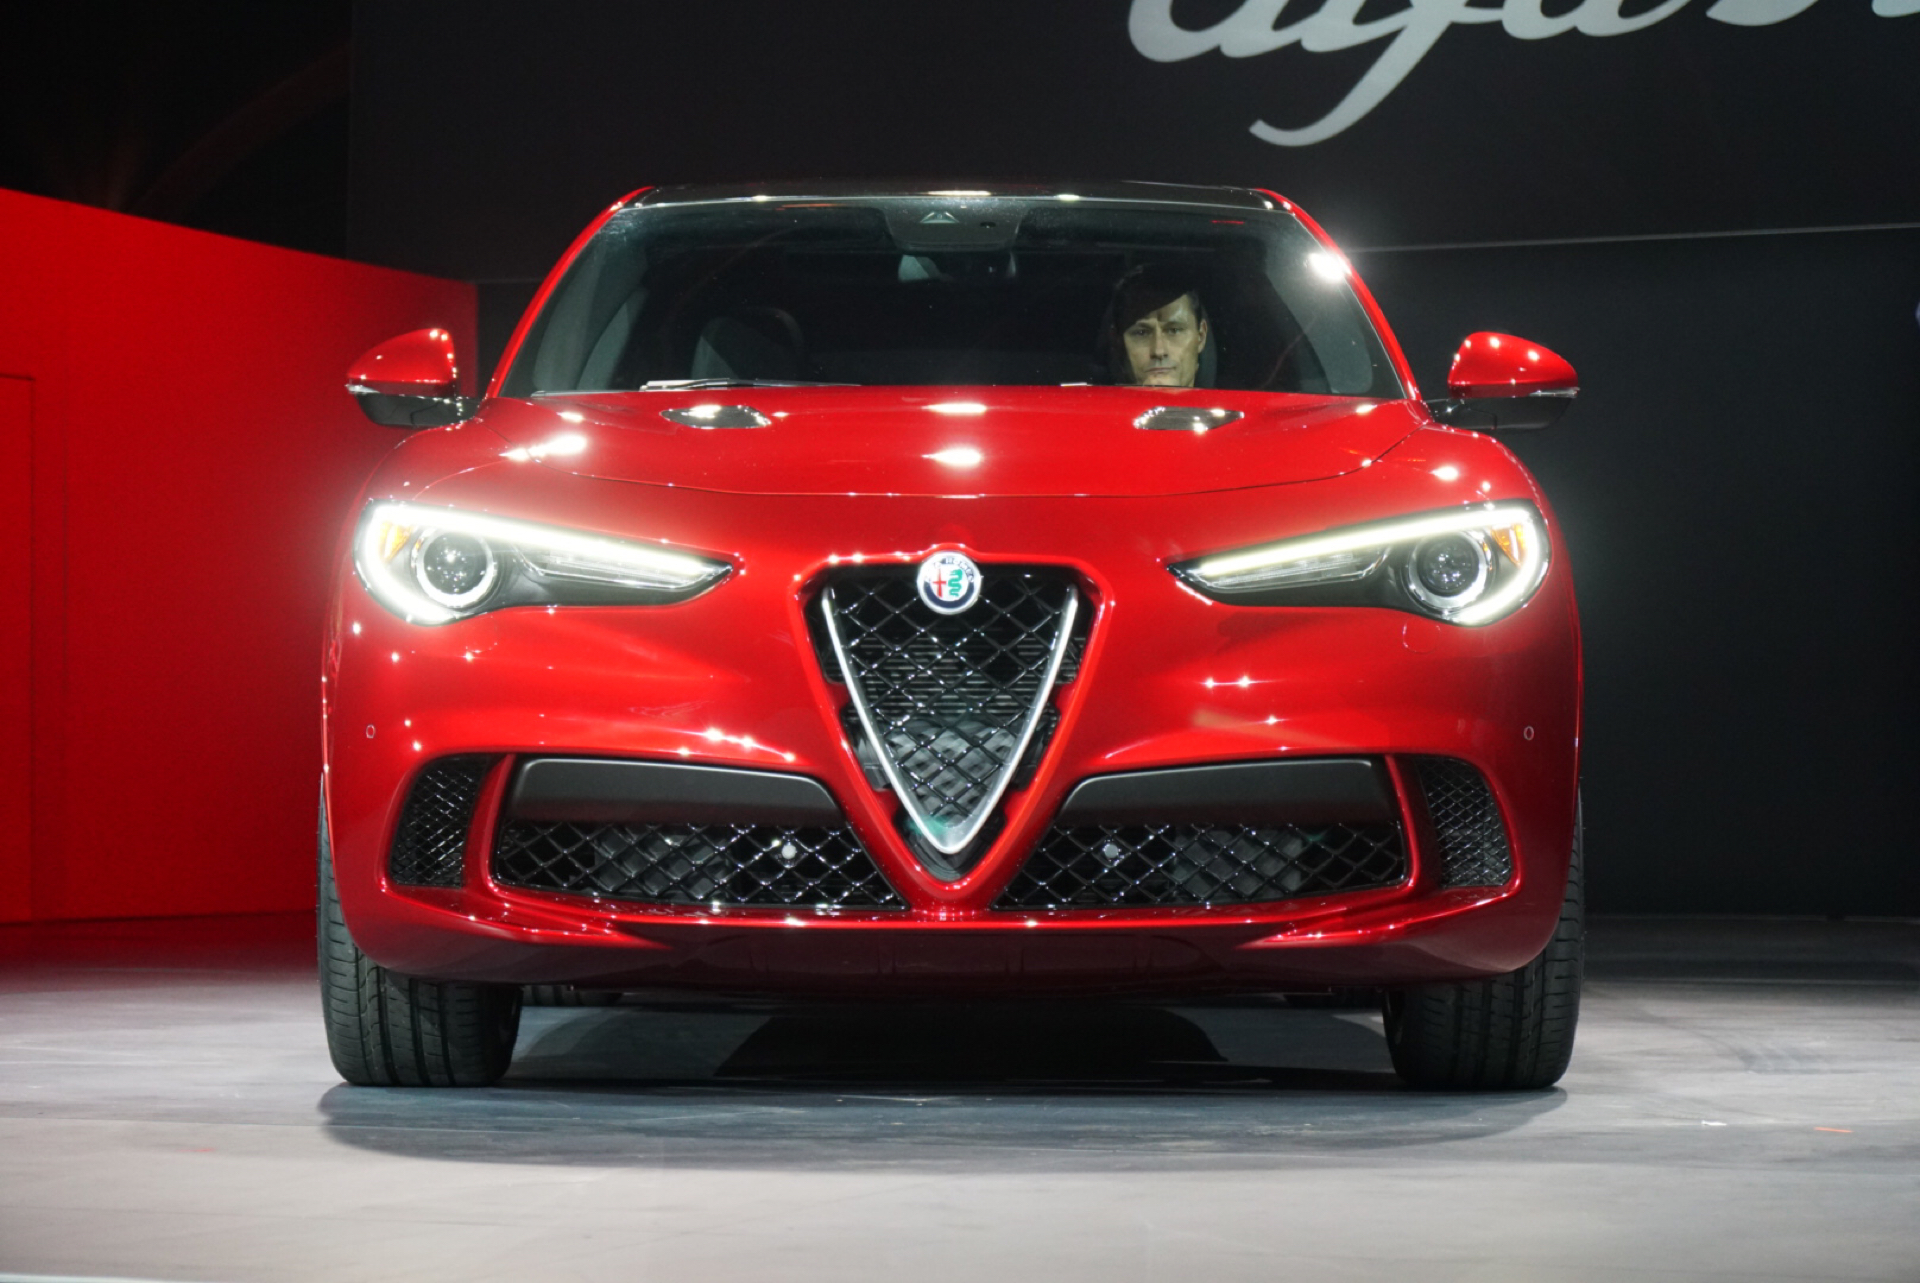 2018 alfa romeo stelvio mid engine porsche 911 modern mclaren f1 car news headlines. Black Bedroom Furniture Sets. Home Design Ideas